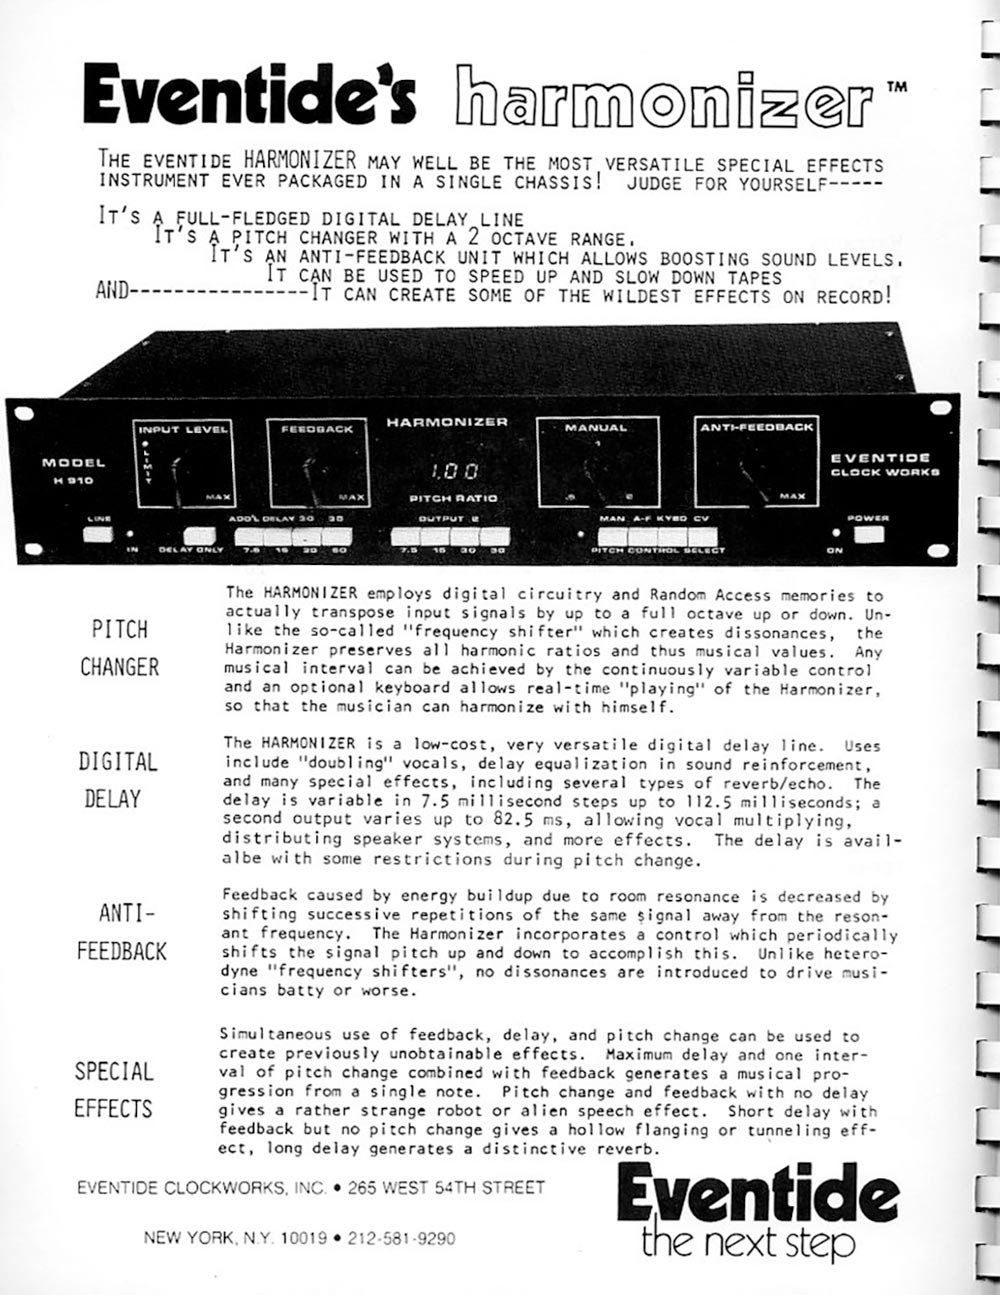 H910 Manual Page 4